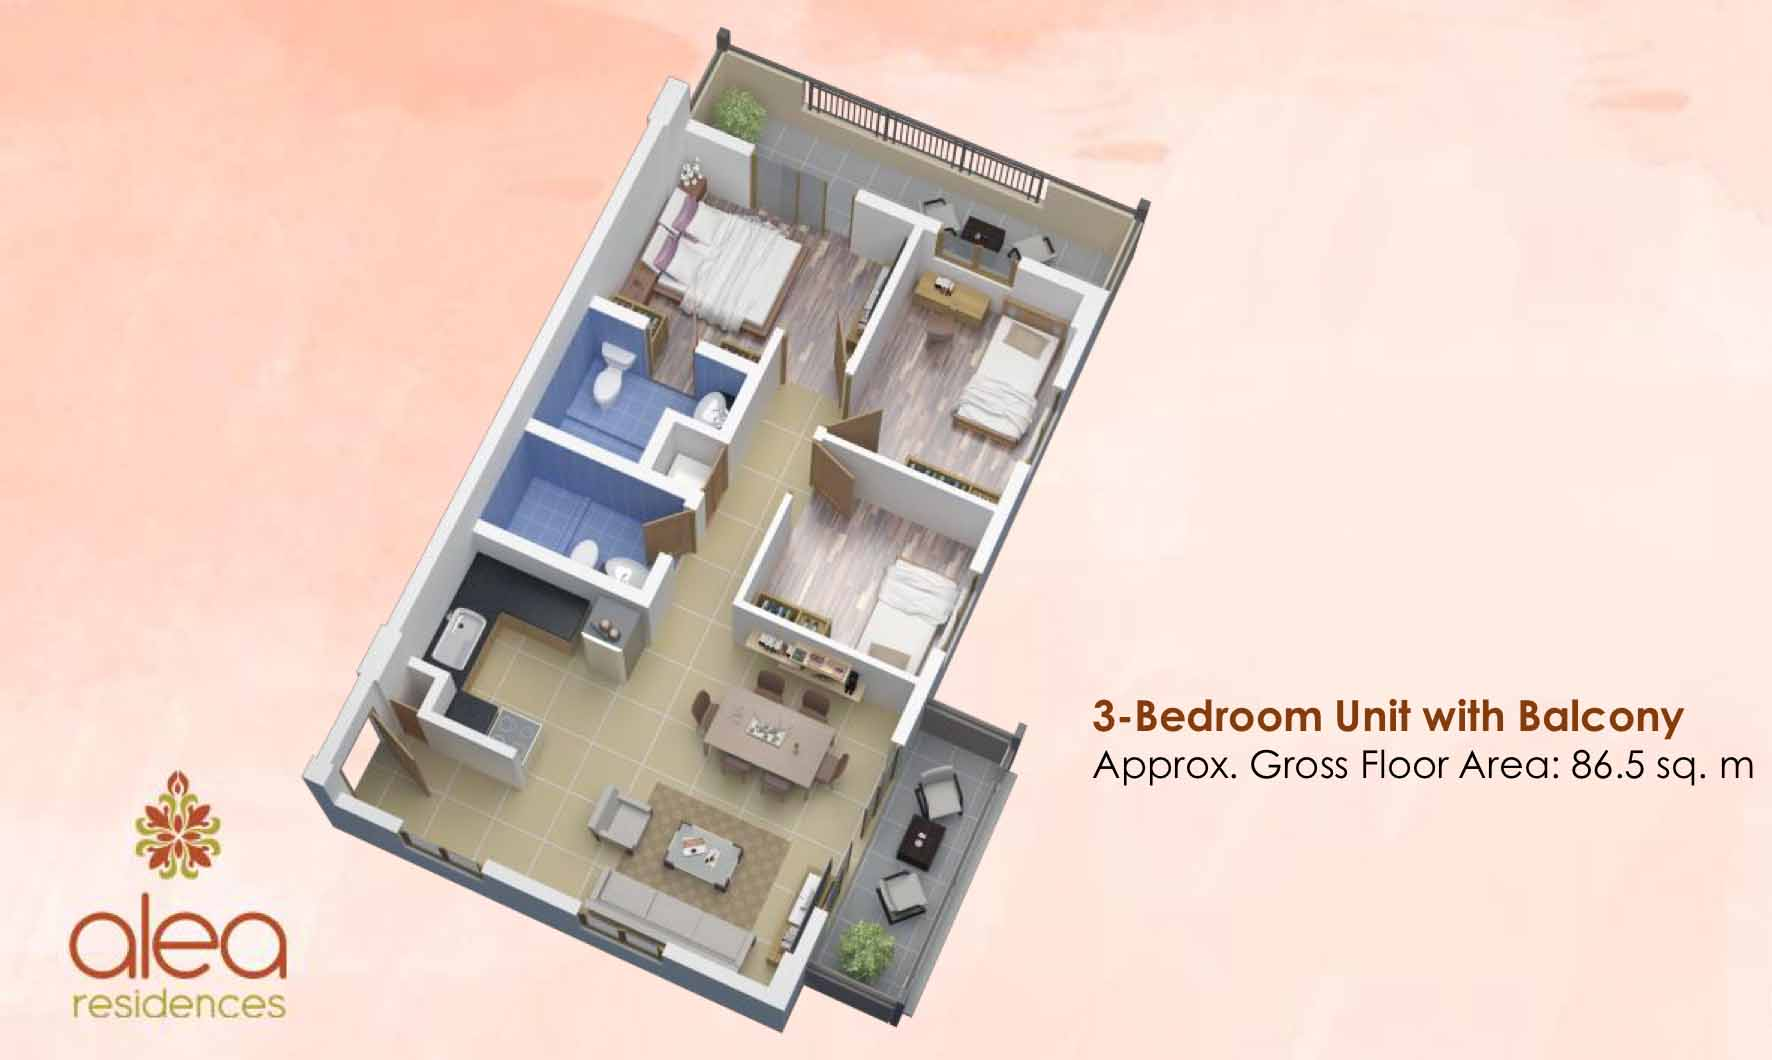 Alea Residences 3BR A End with Balcony 86.5 sqm 3D